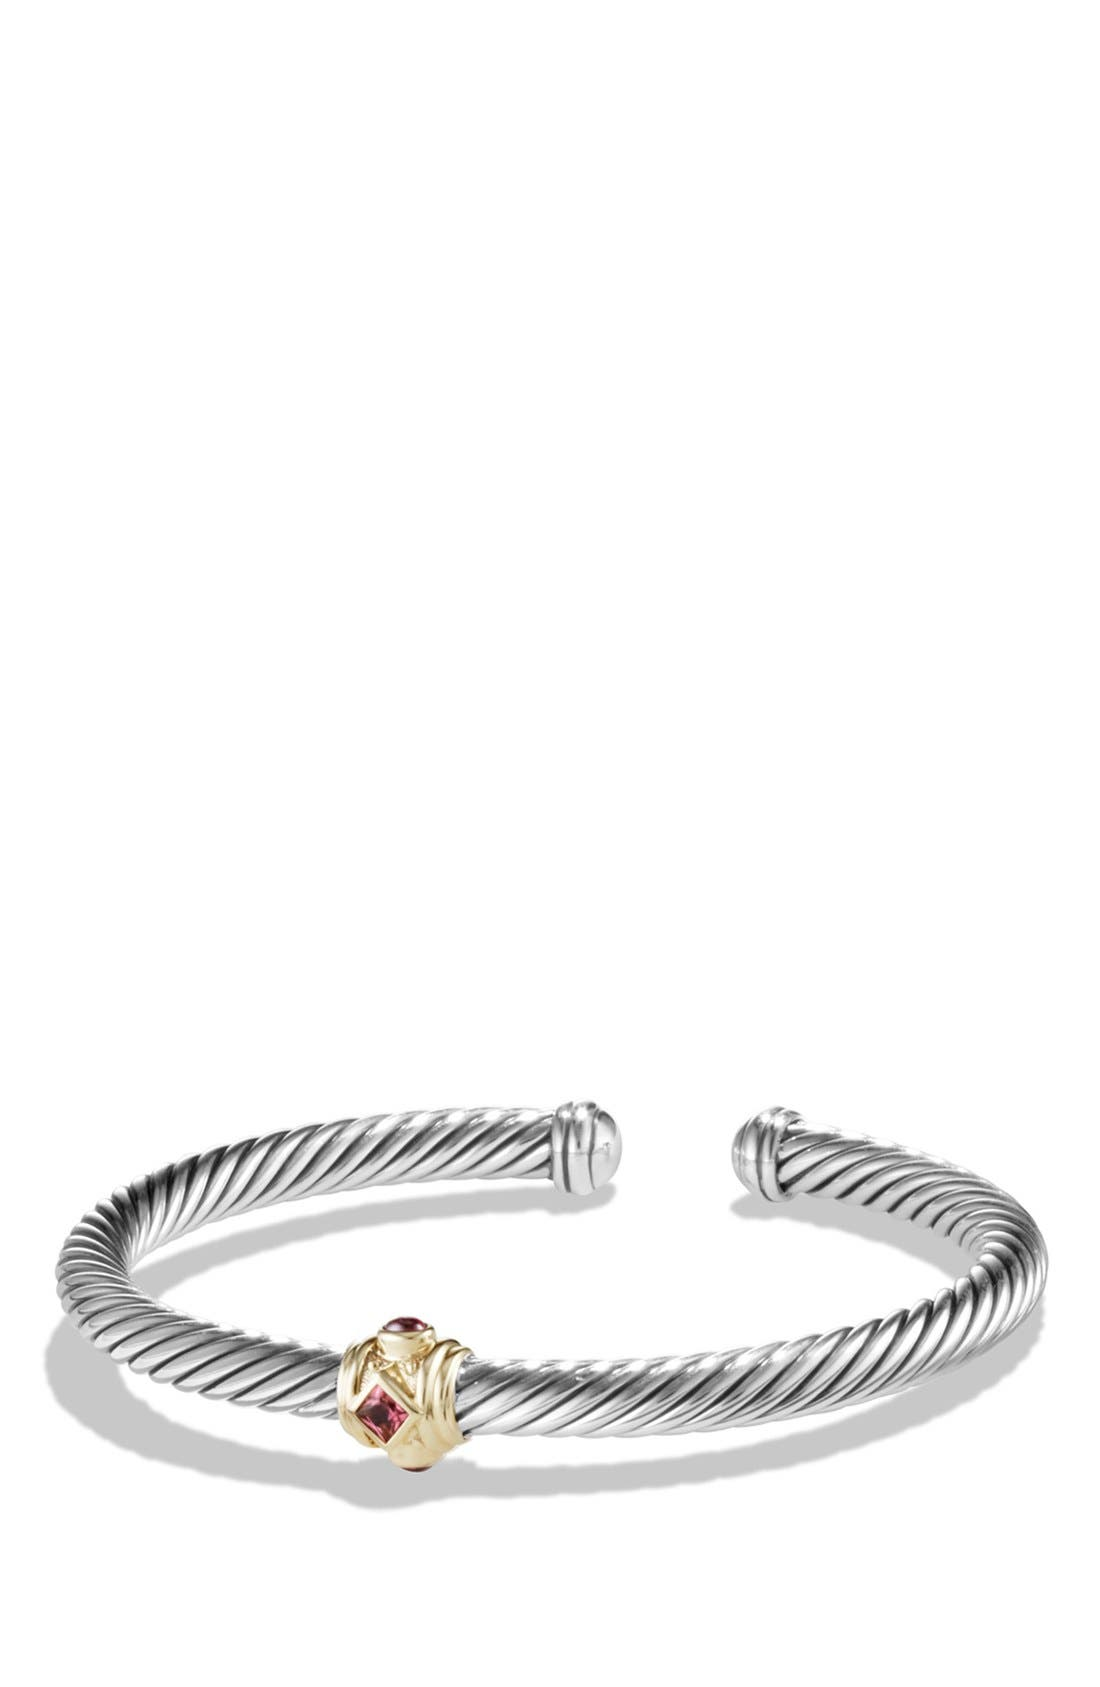 Alternate Image 1 Selected - David Yurman 'Renaissance' Bracelet with Semiprecious Stone and 14K Gold